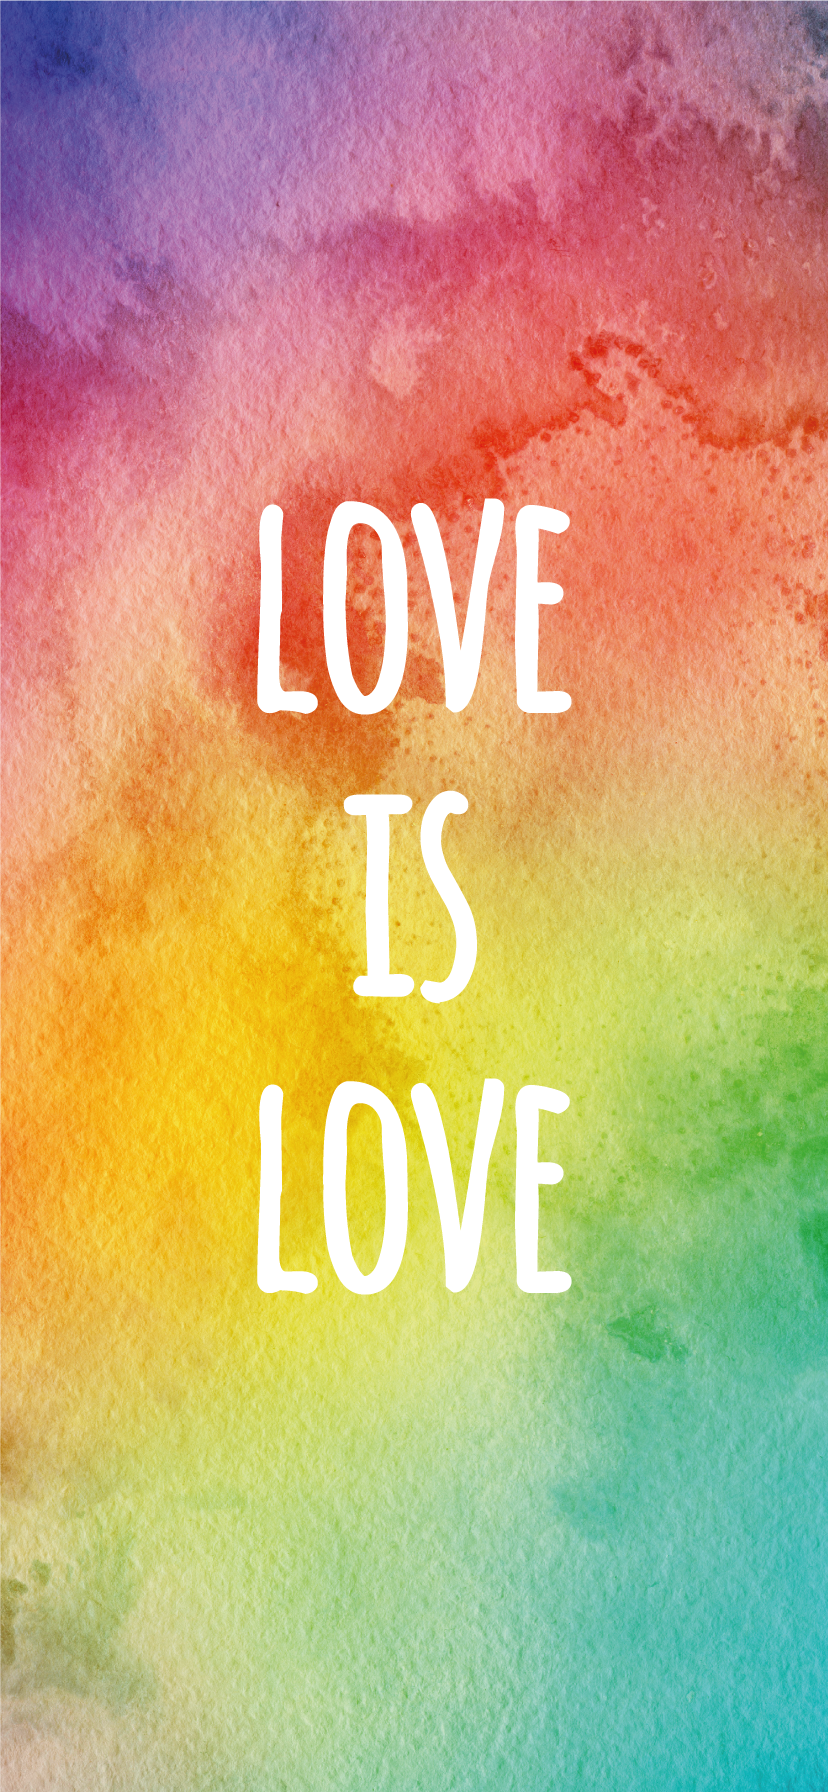 Love Is Love LGBTQ+ Rainbow Watercolor iPhone Wallpaper Background